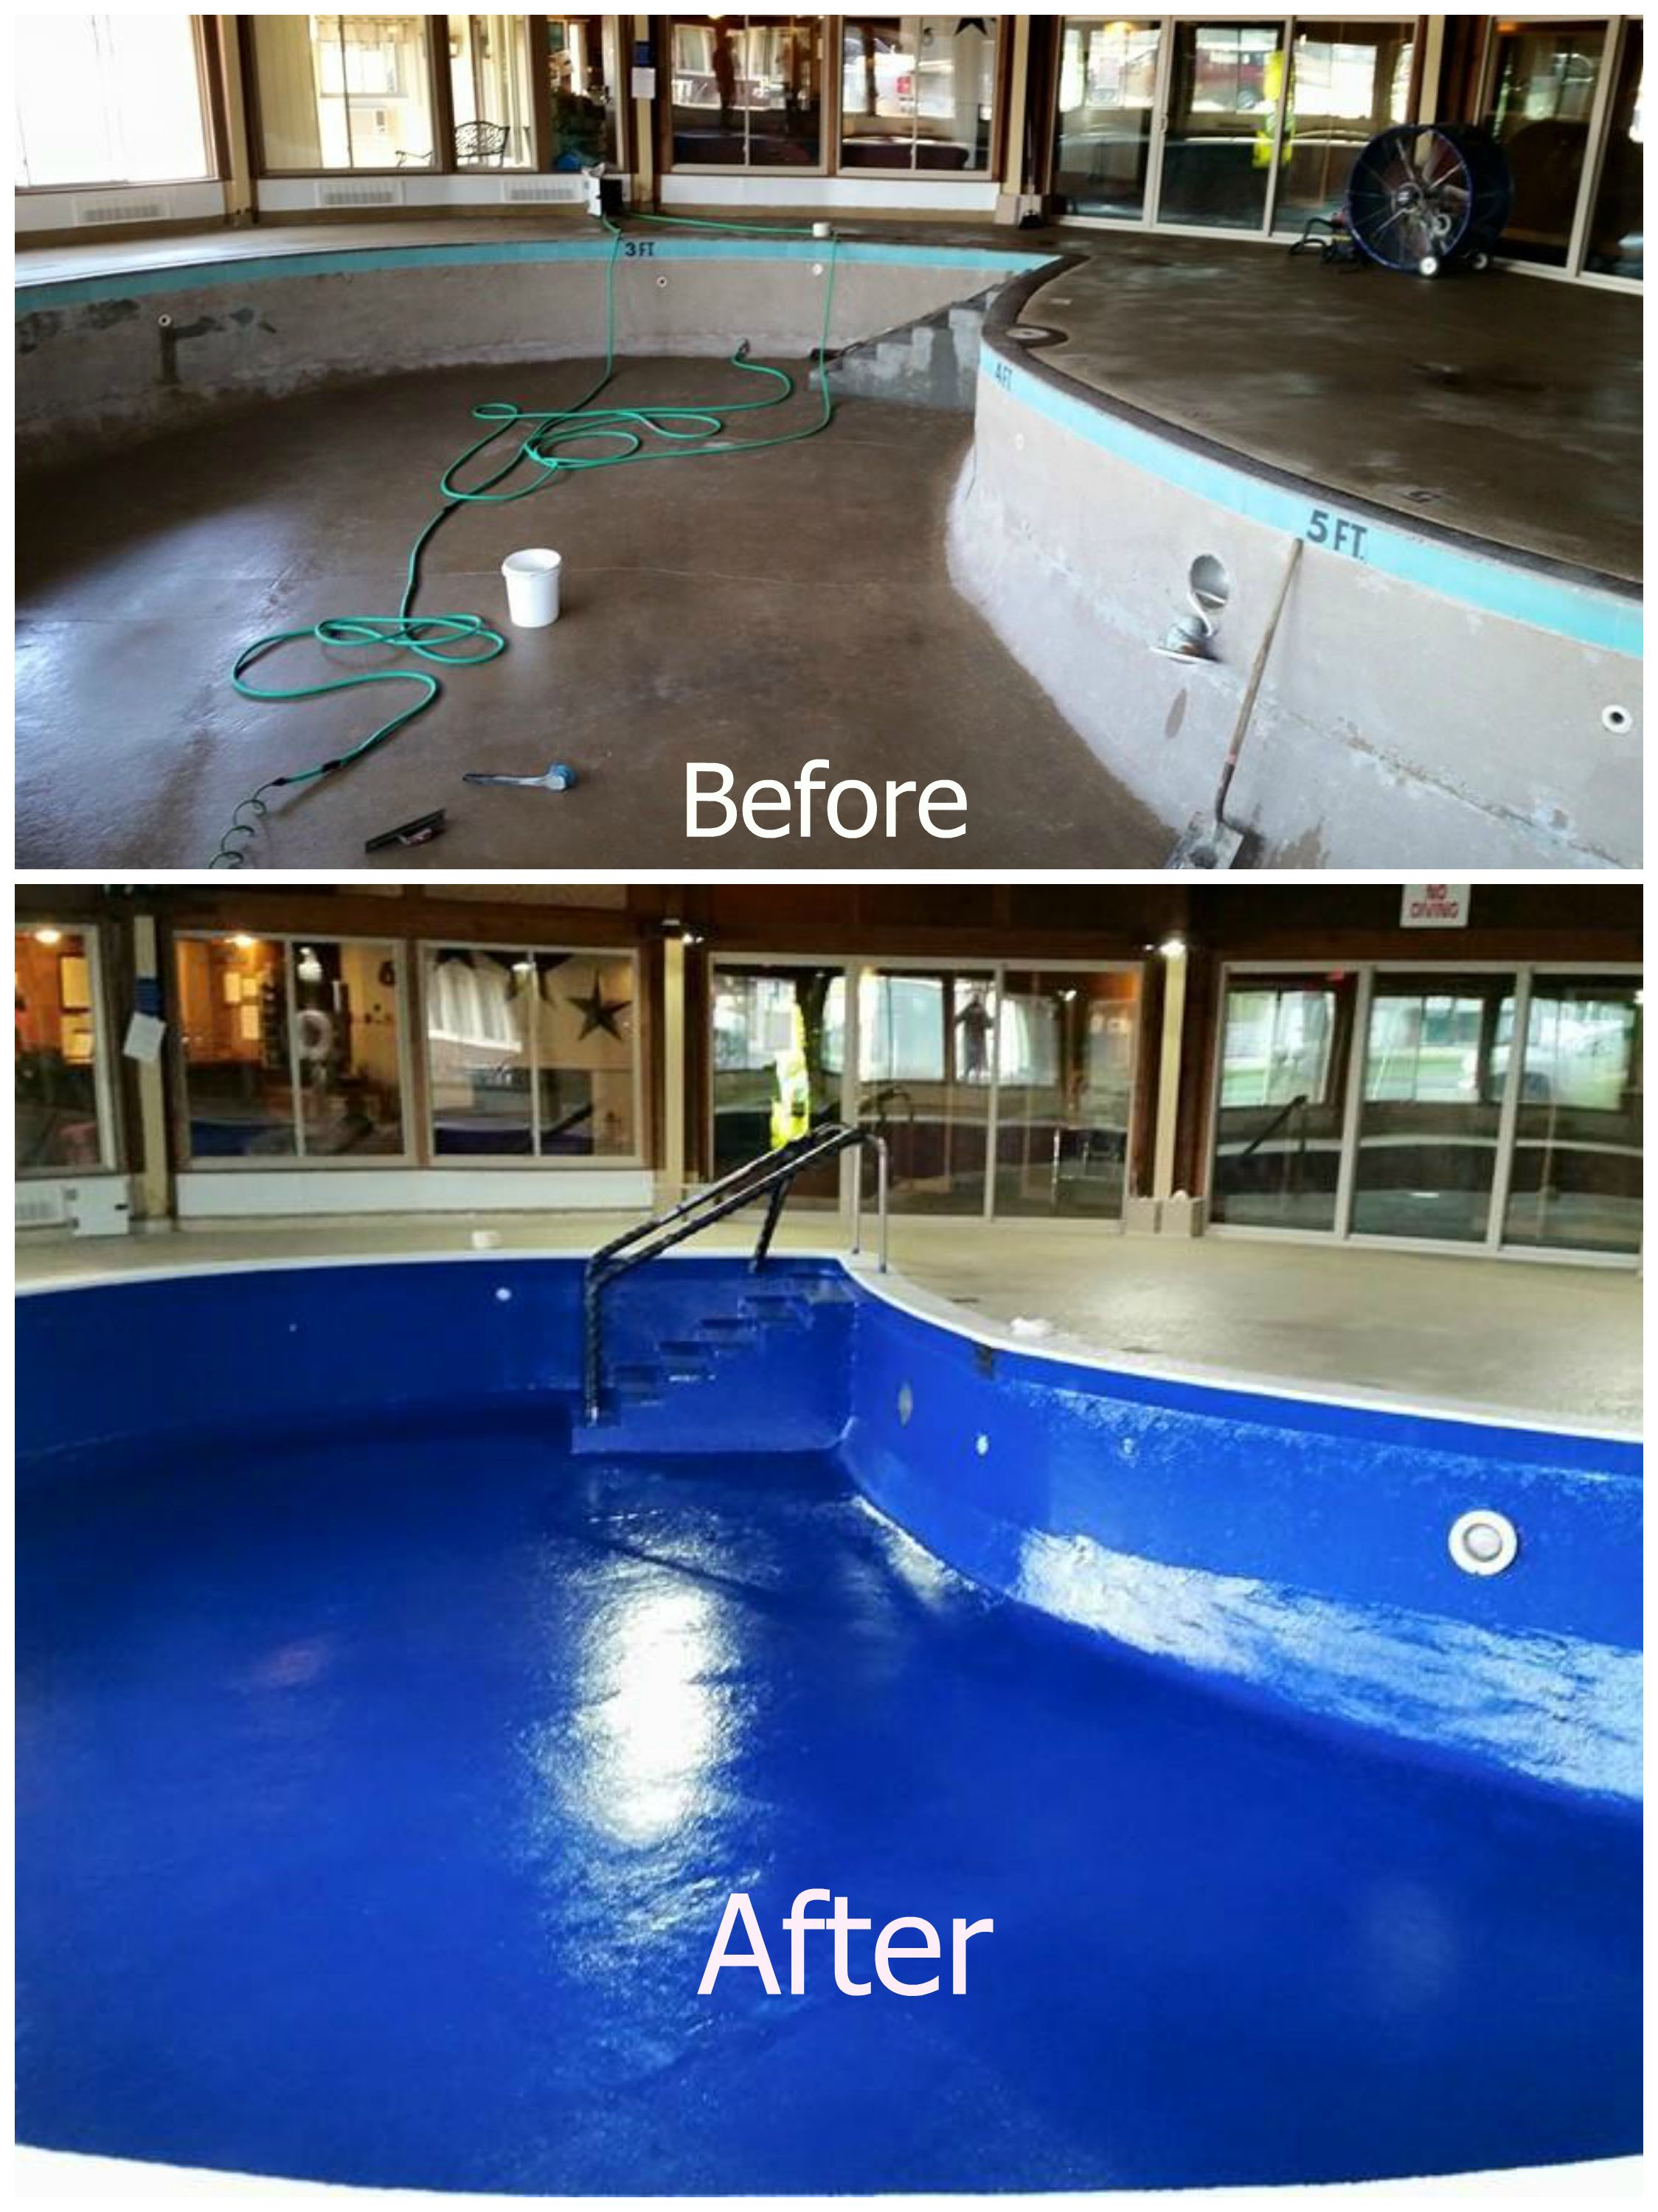 Diy repairing and resurfacing swimming pool swimming pool repair waterproofing pool repair diy a solution that actually works solutioingenieria Image collections